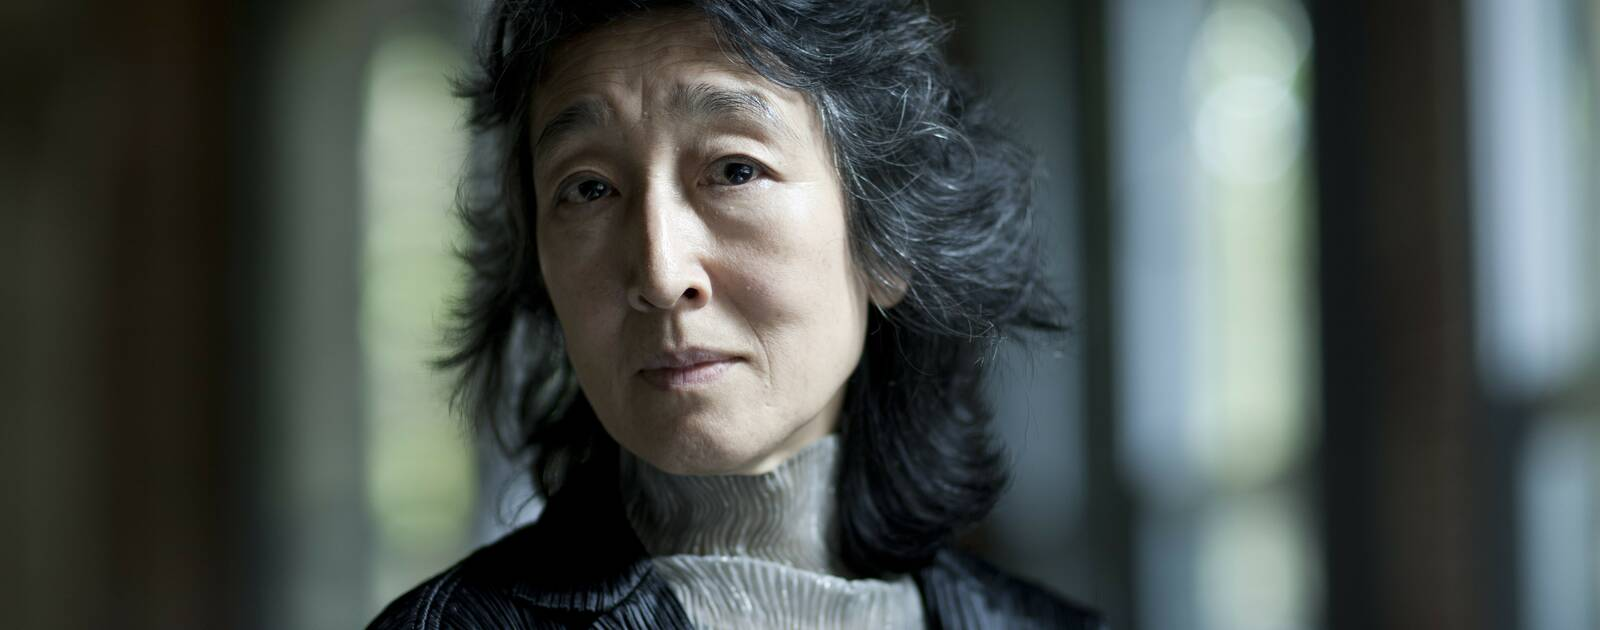 Pianist and conductor, Mitsuko Uchida